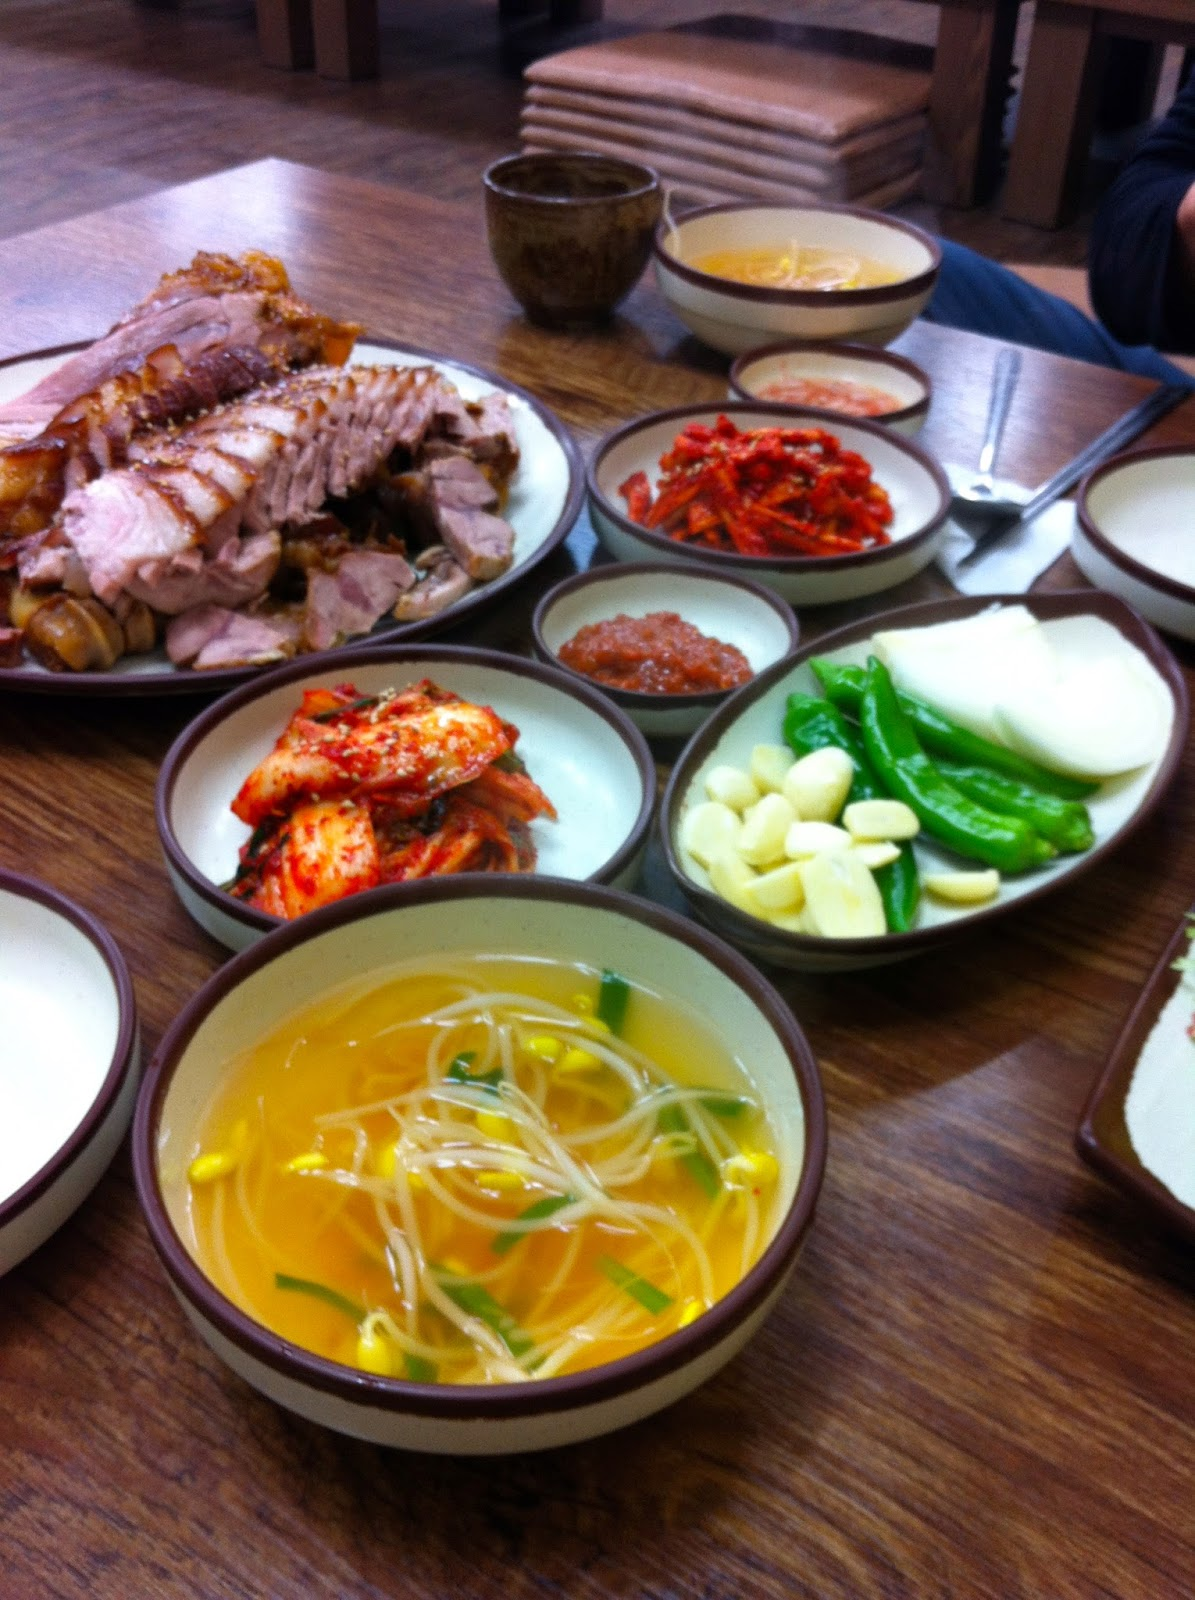 Korean food at restaurant